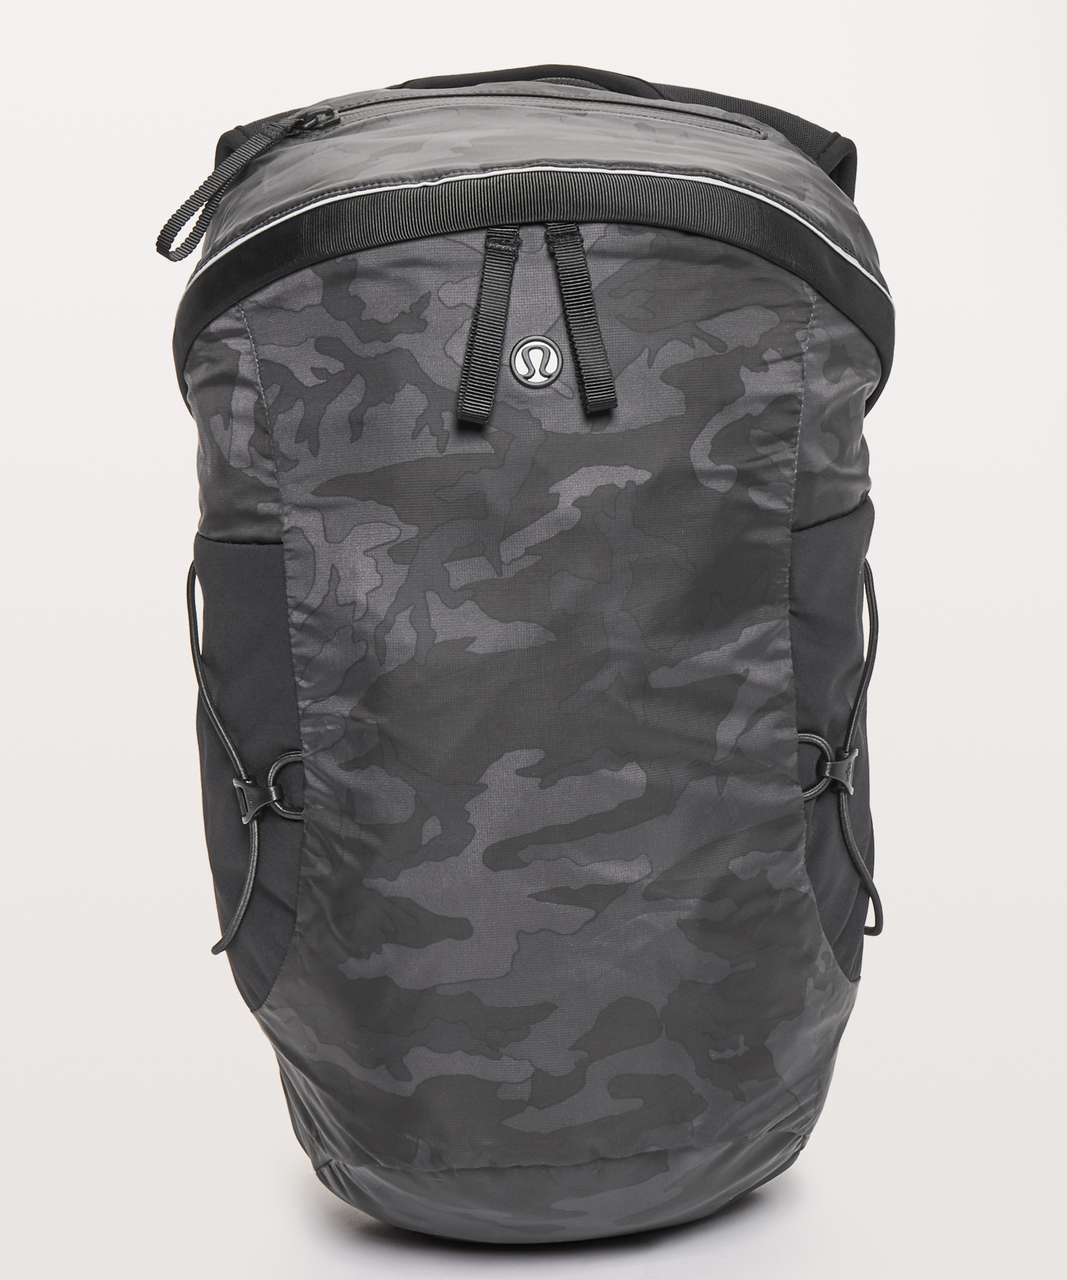 Lululemon Run All Day Backpack II *13L - Incognito Camo Multi Grey / Black